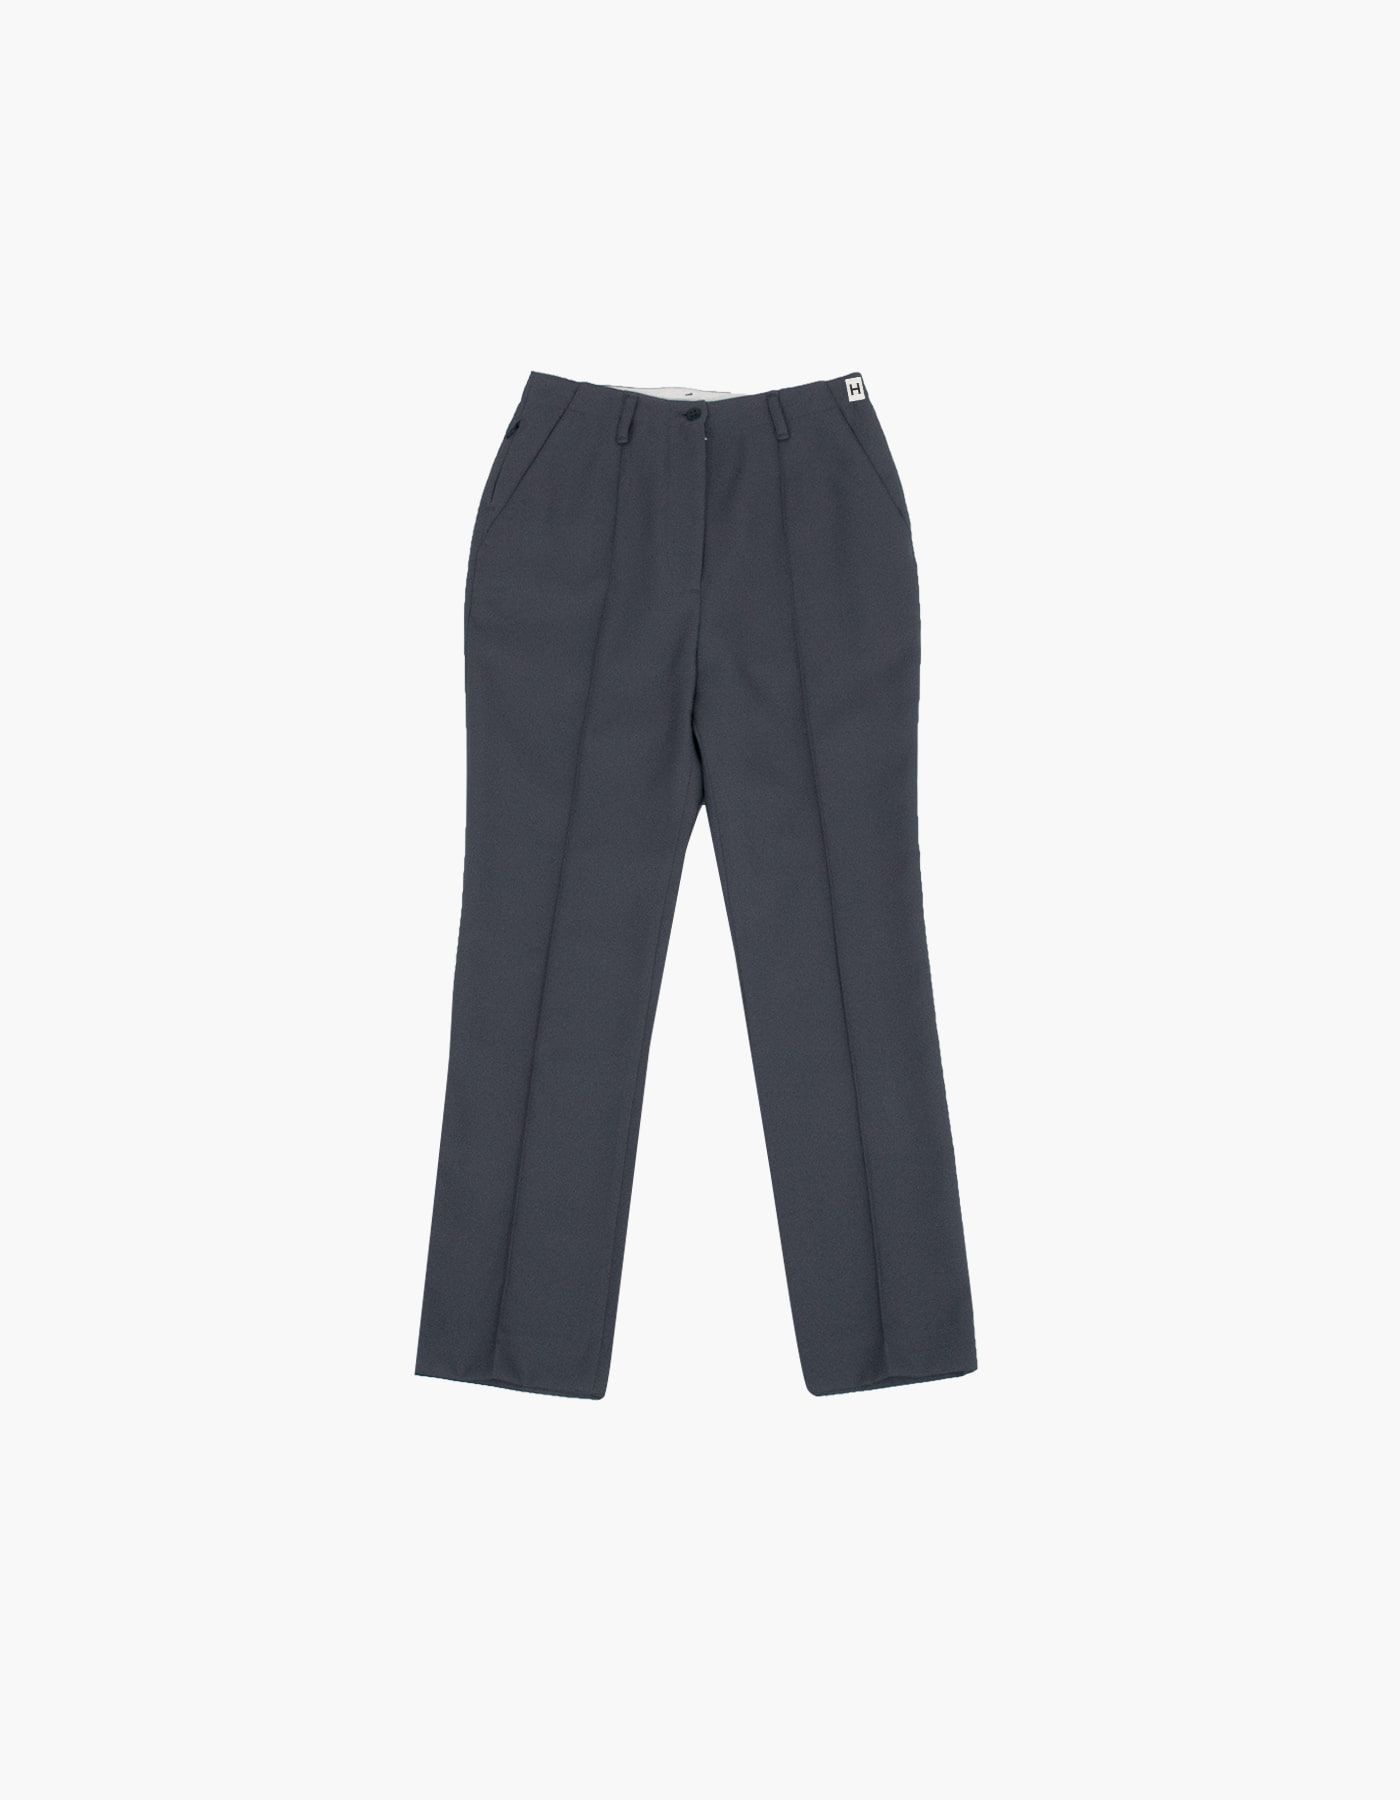 851 PIN TUCK CHINO PANTS (W) / CHARCOAL